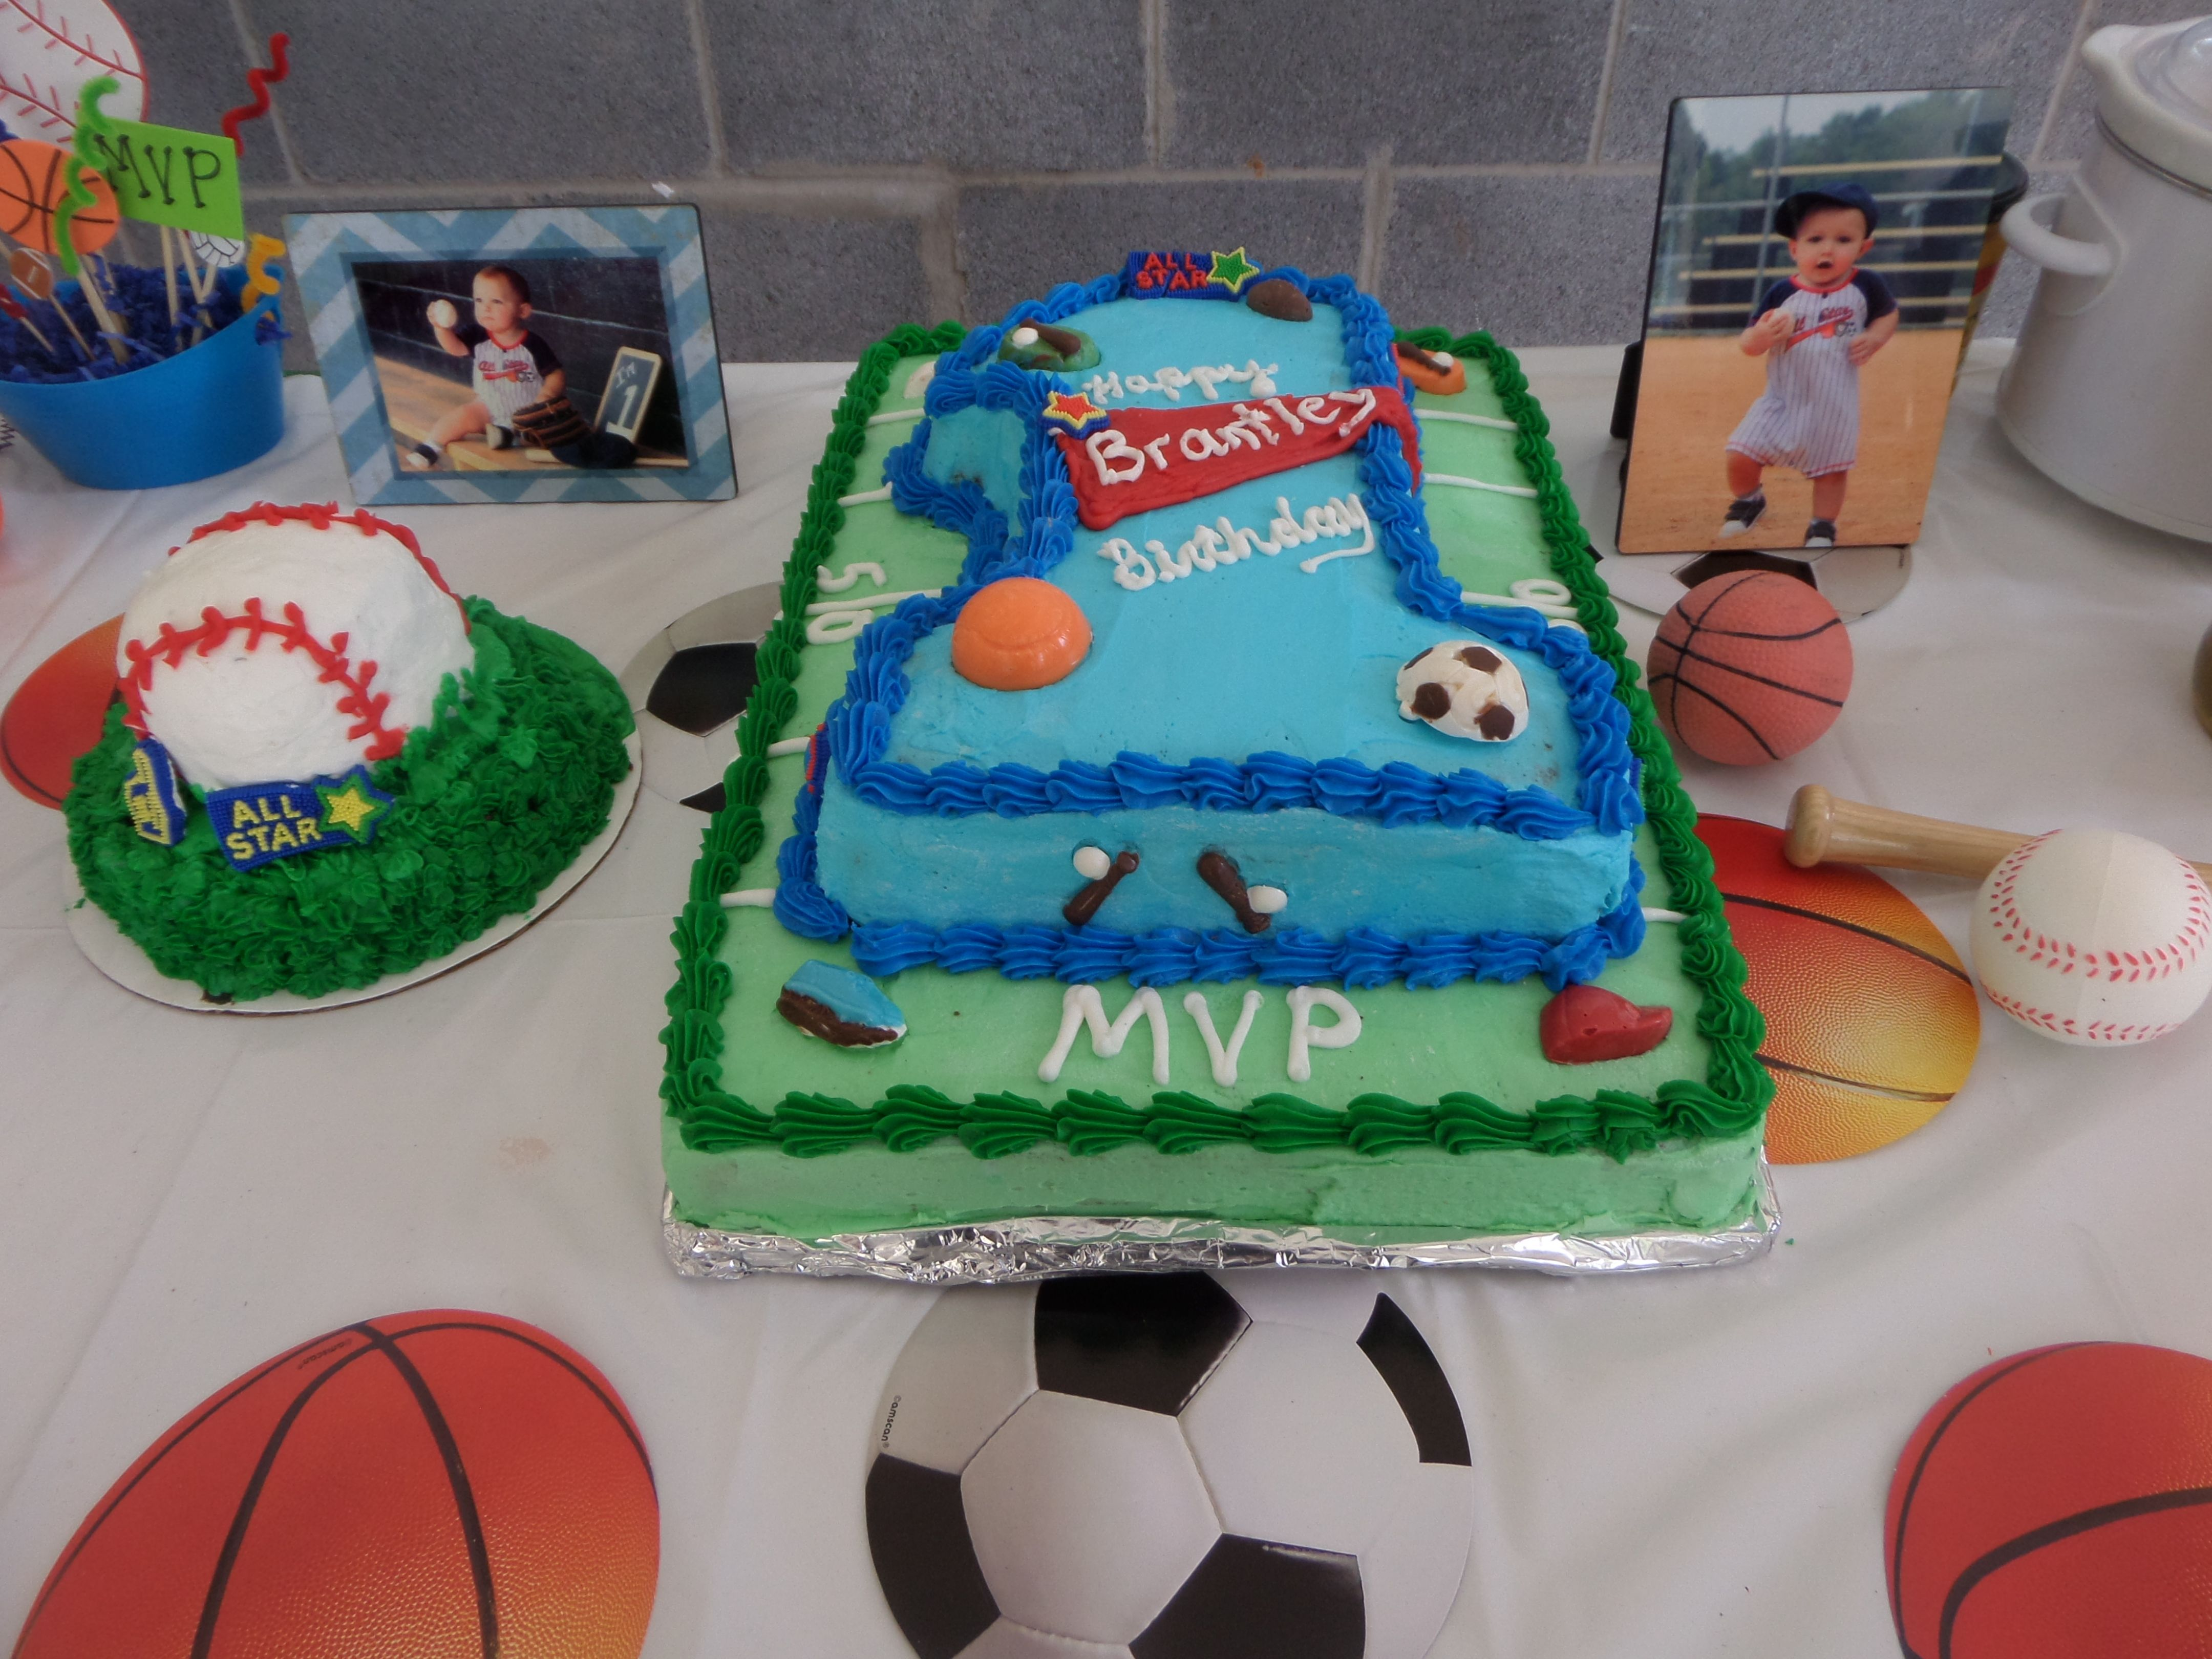 All Star Sports Theme First Birthday Party Ideas Cake And